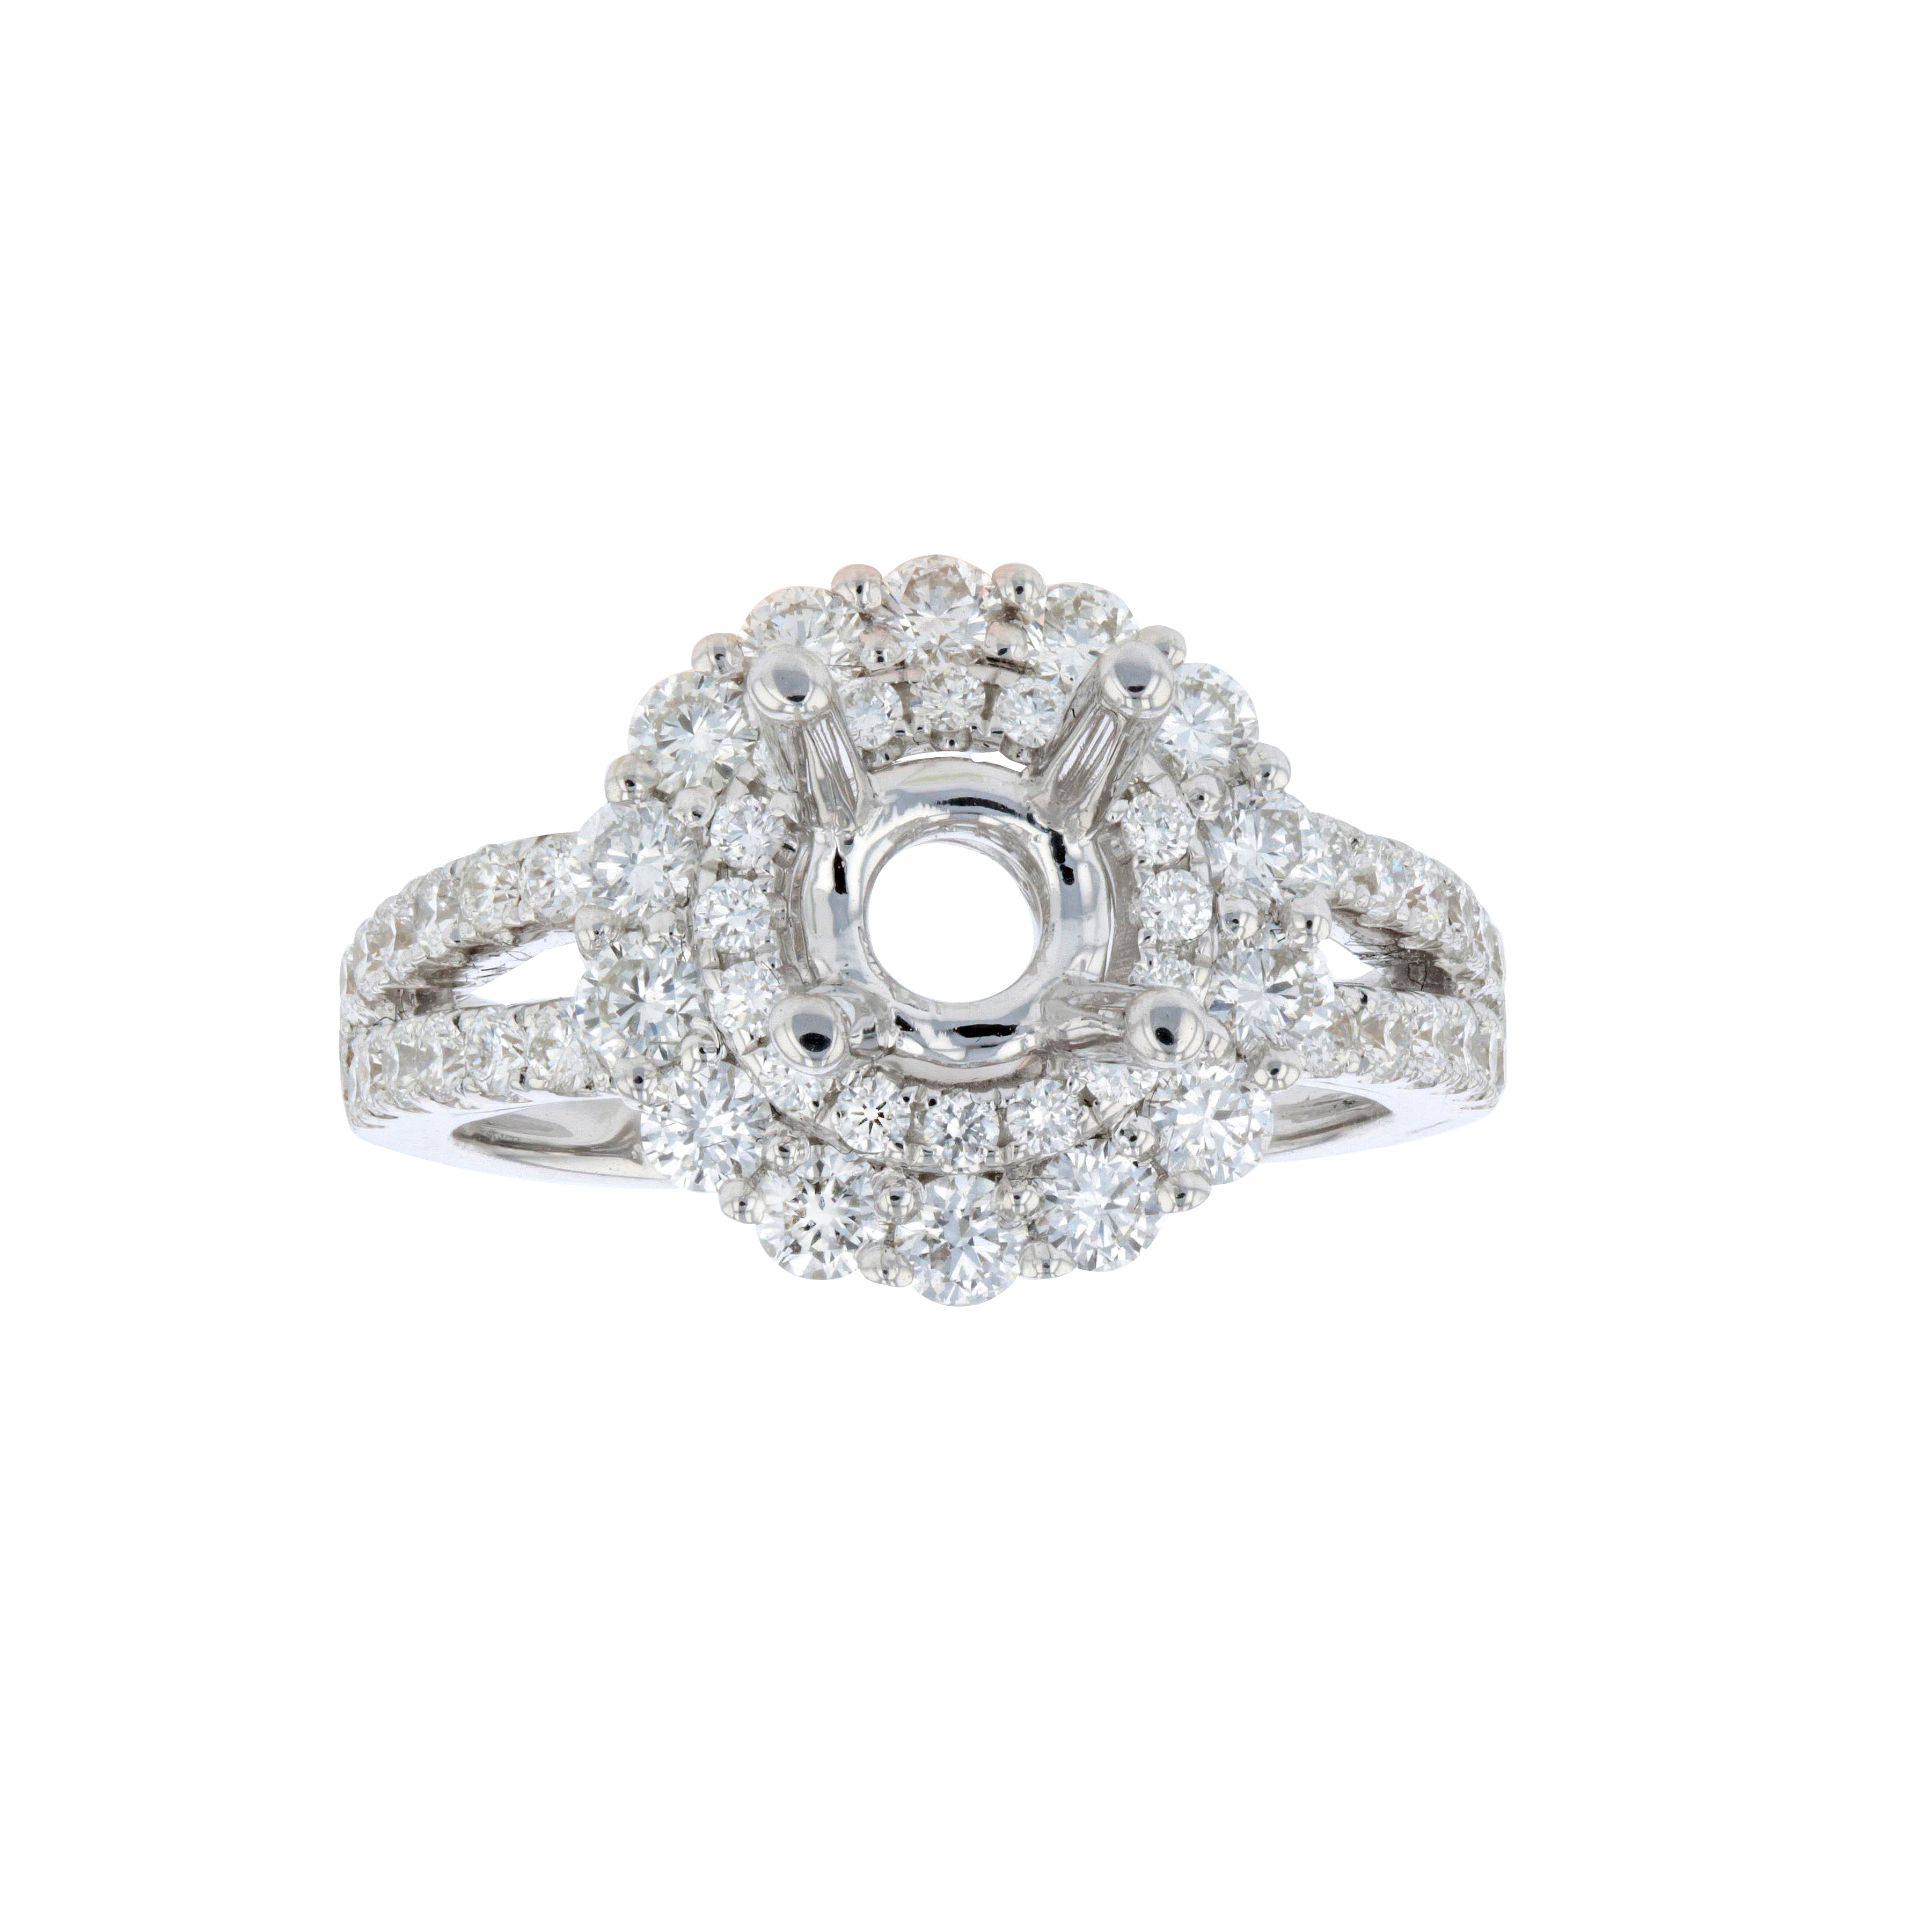 View 1.07ctw Diamond Semi Mount Engagement Ring in 18k White Gold